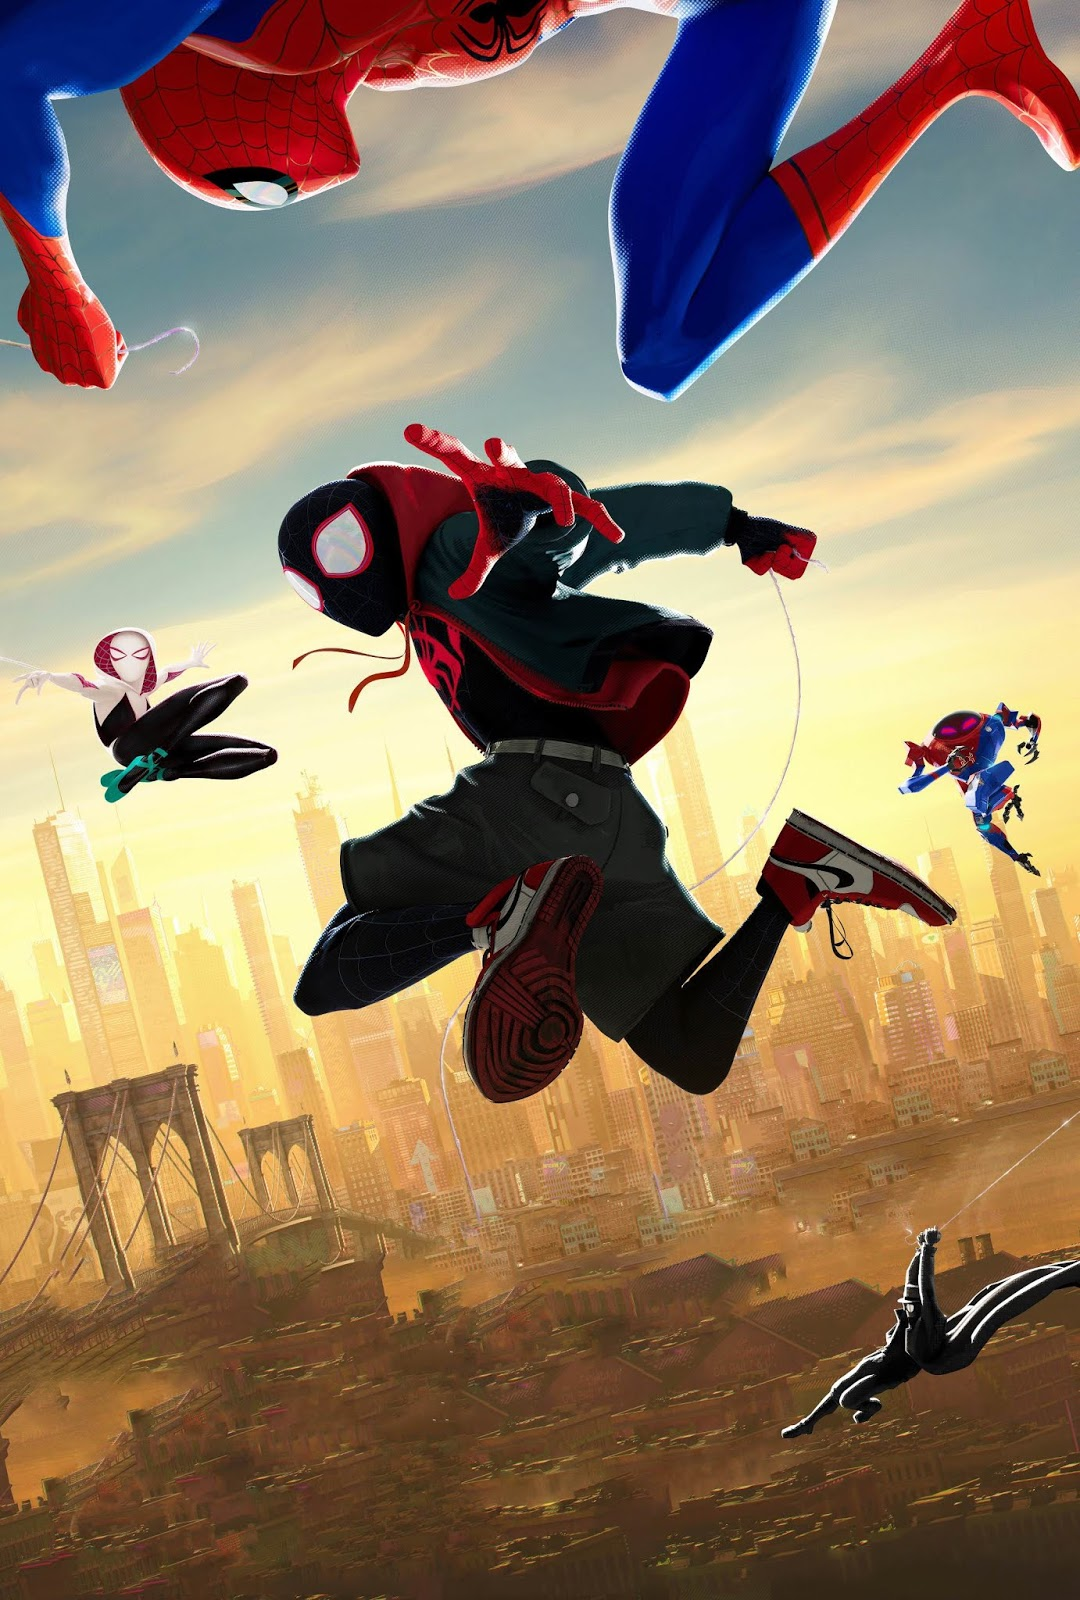 SPIDER-MAN: INTO THE SPIDER-VERSE Textless Poster